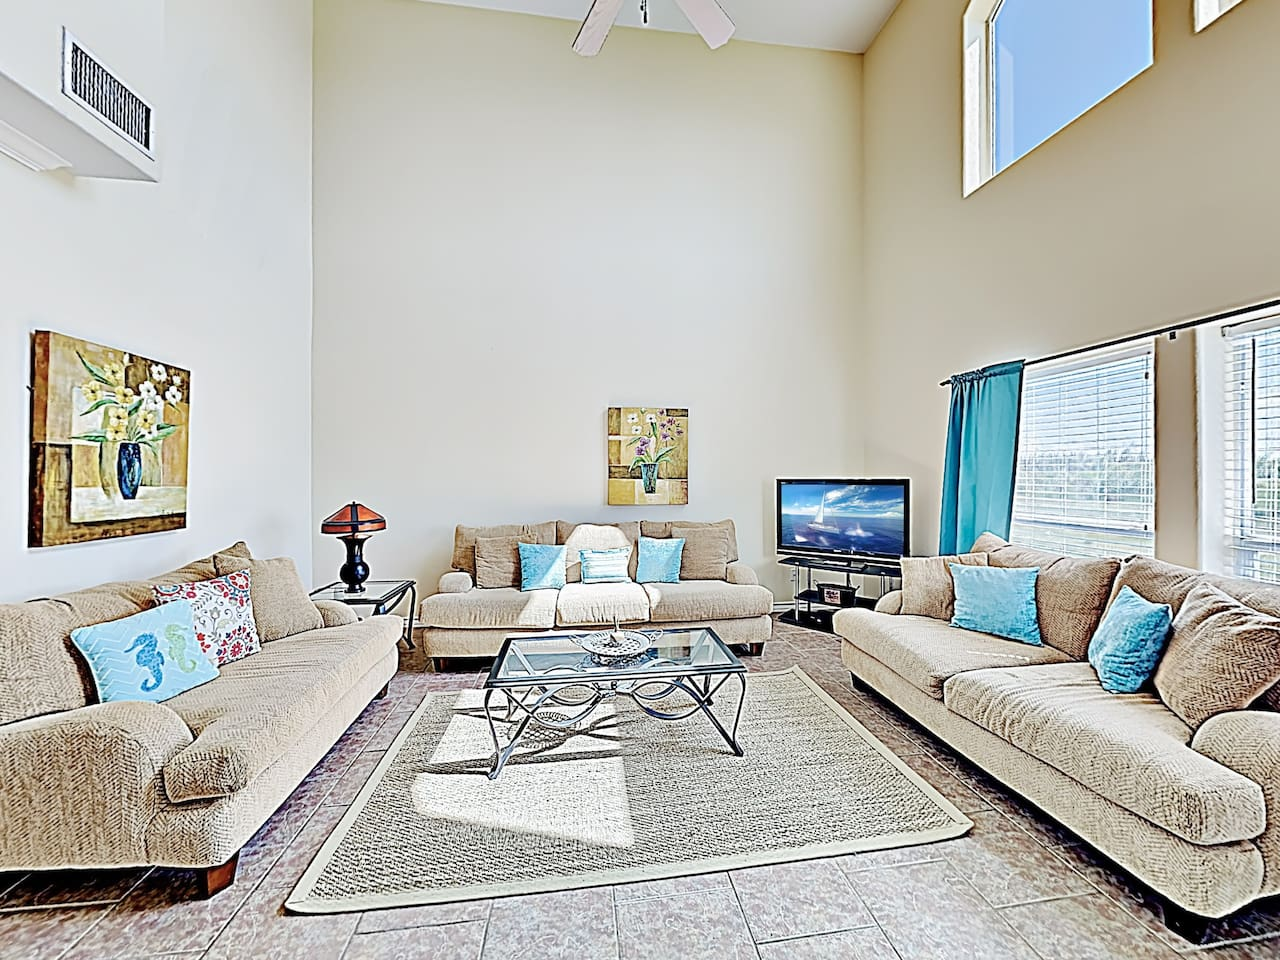 Welcome to Corpus Christi! This townhouse is professionally managed by TurnKey Vacation Rentals.